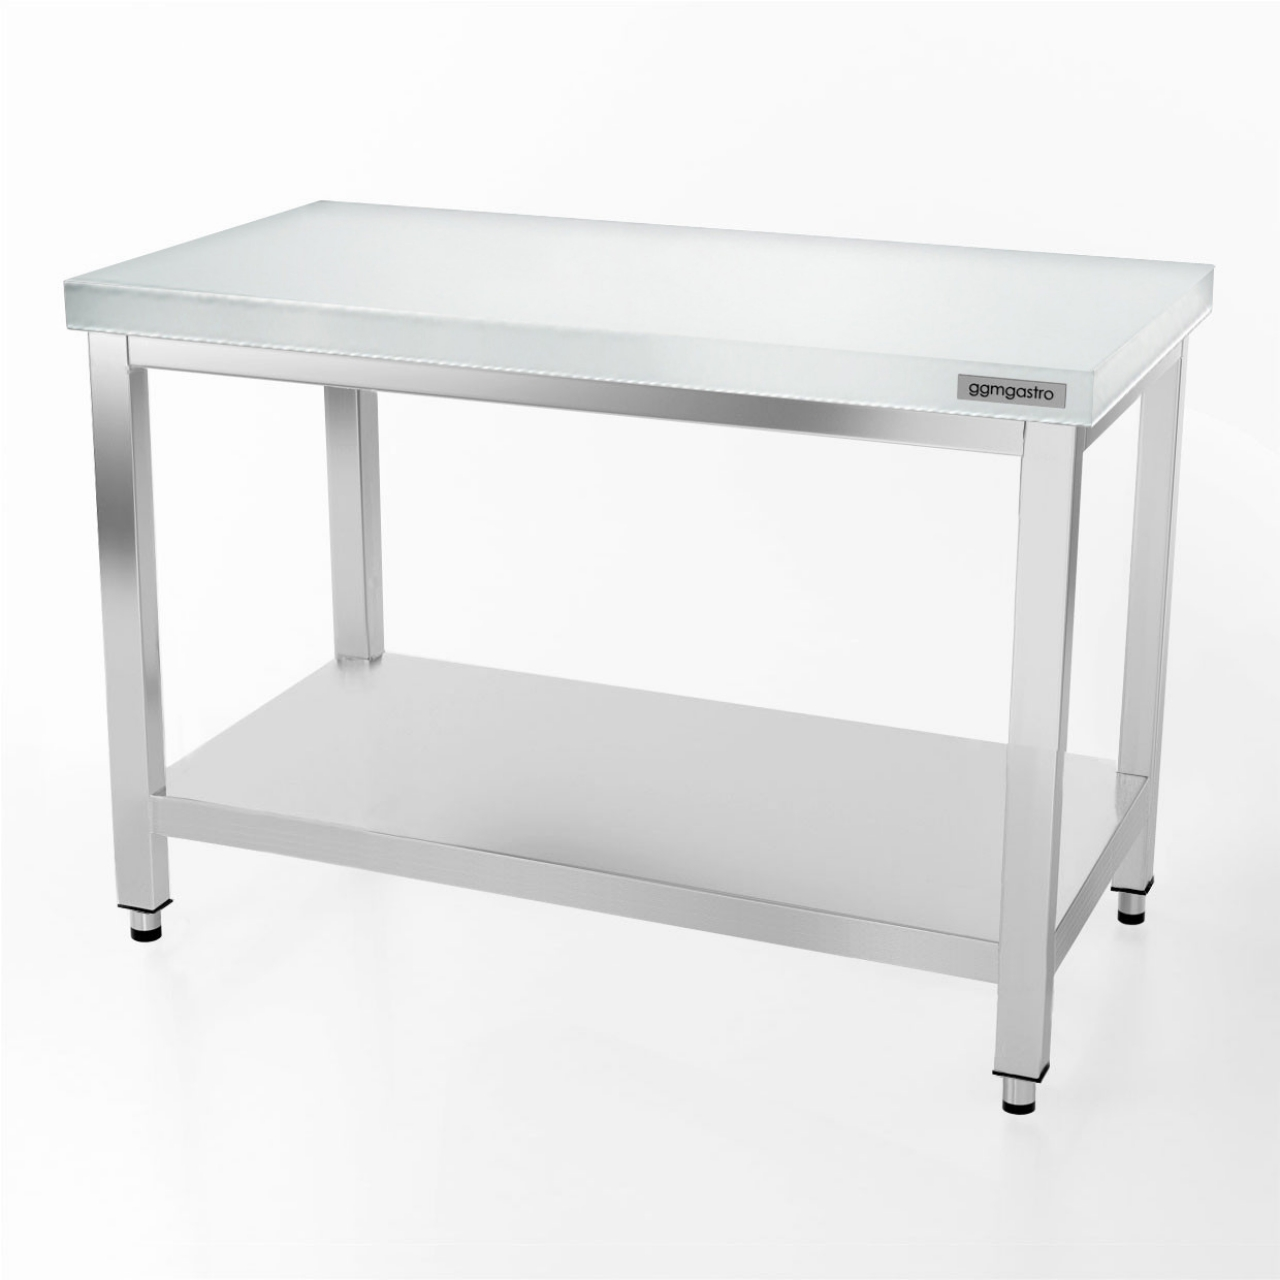 Butcher table 1200mm